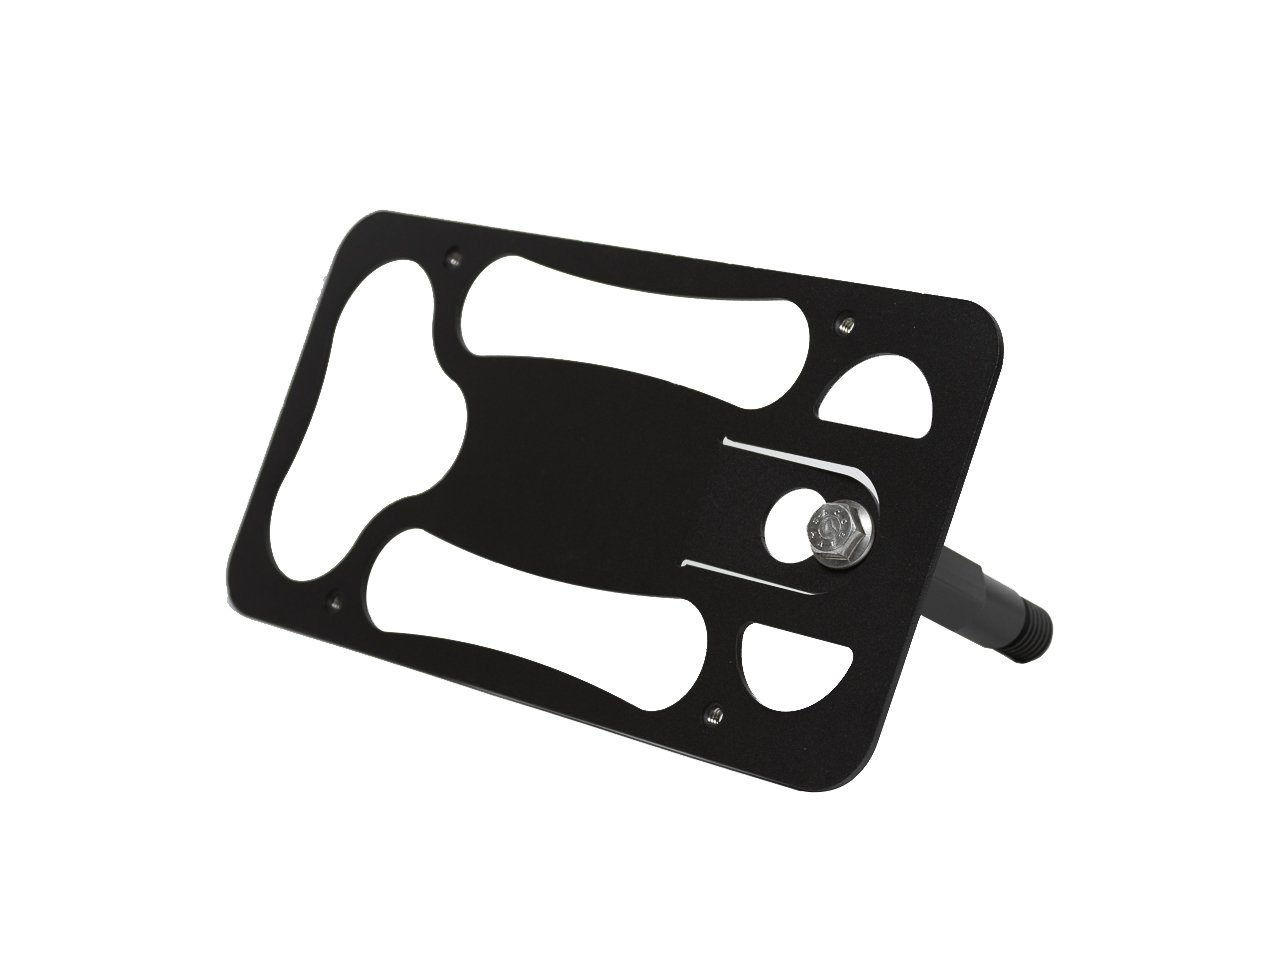 Image of Fasteners CravenSpeed Platypus License Plate Mount for Toyota Supra 2020 | No Drilling | Installs in Seconds | Made in The USA